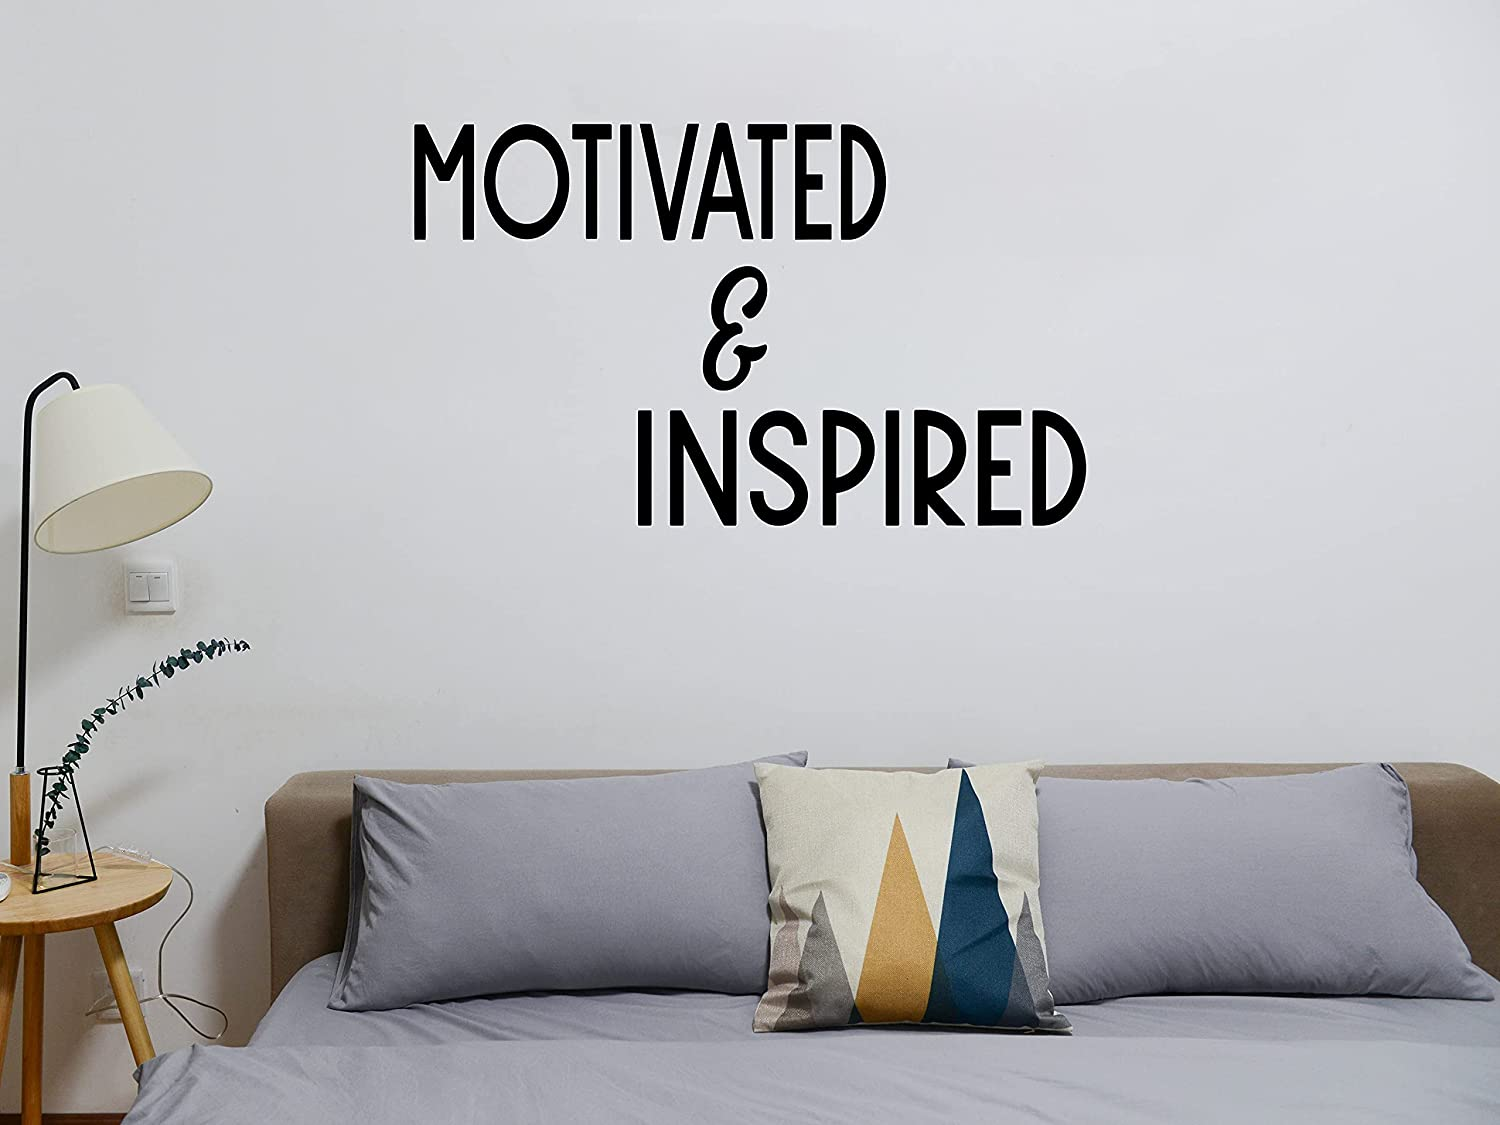 Motivated Inspired Luxury goods Vinyl Sign Decal Home Sticker Car Nippon regular agency for Decor